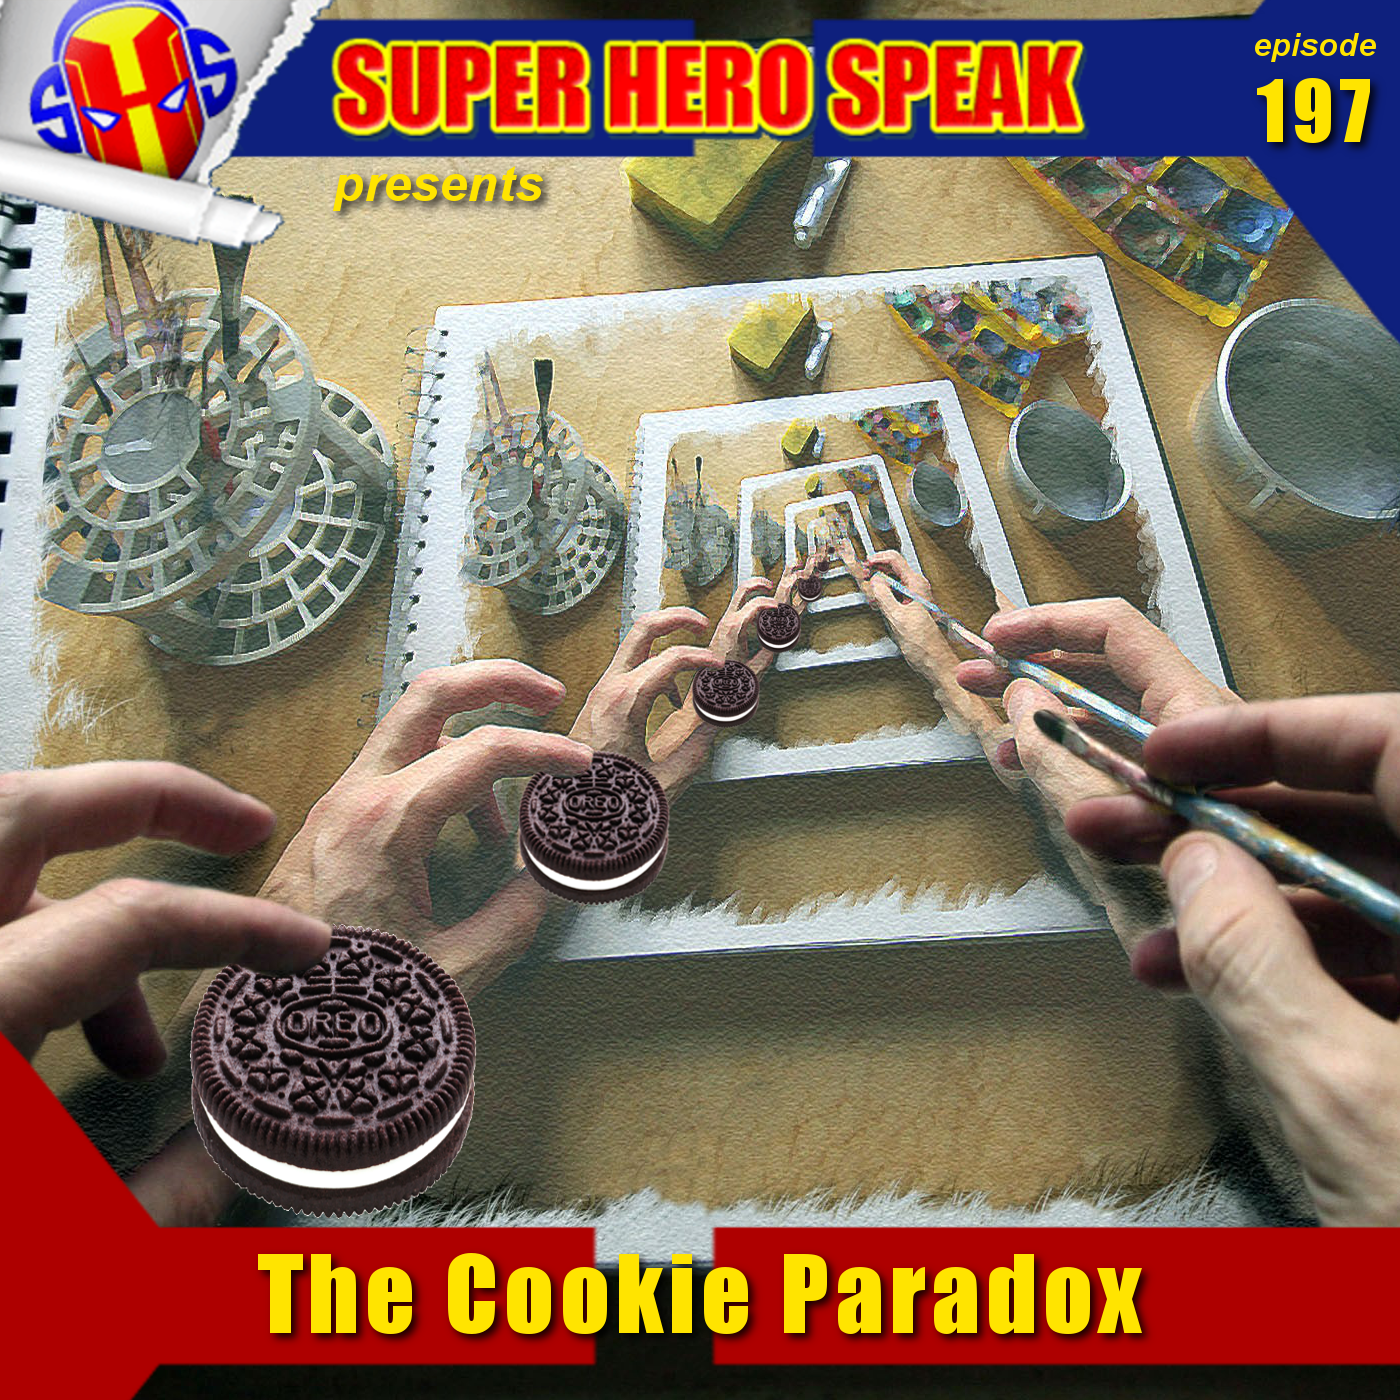 #197: The Cookie Paradox